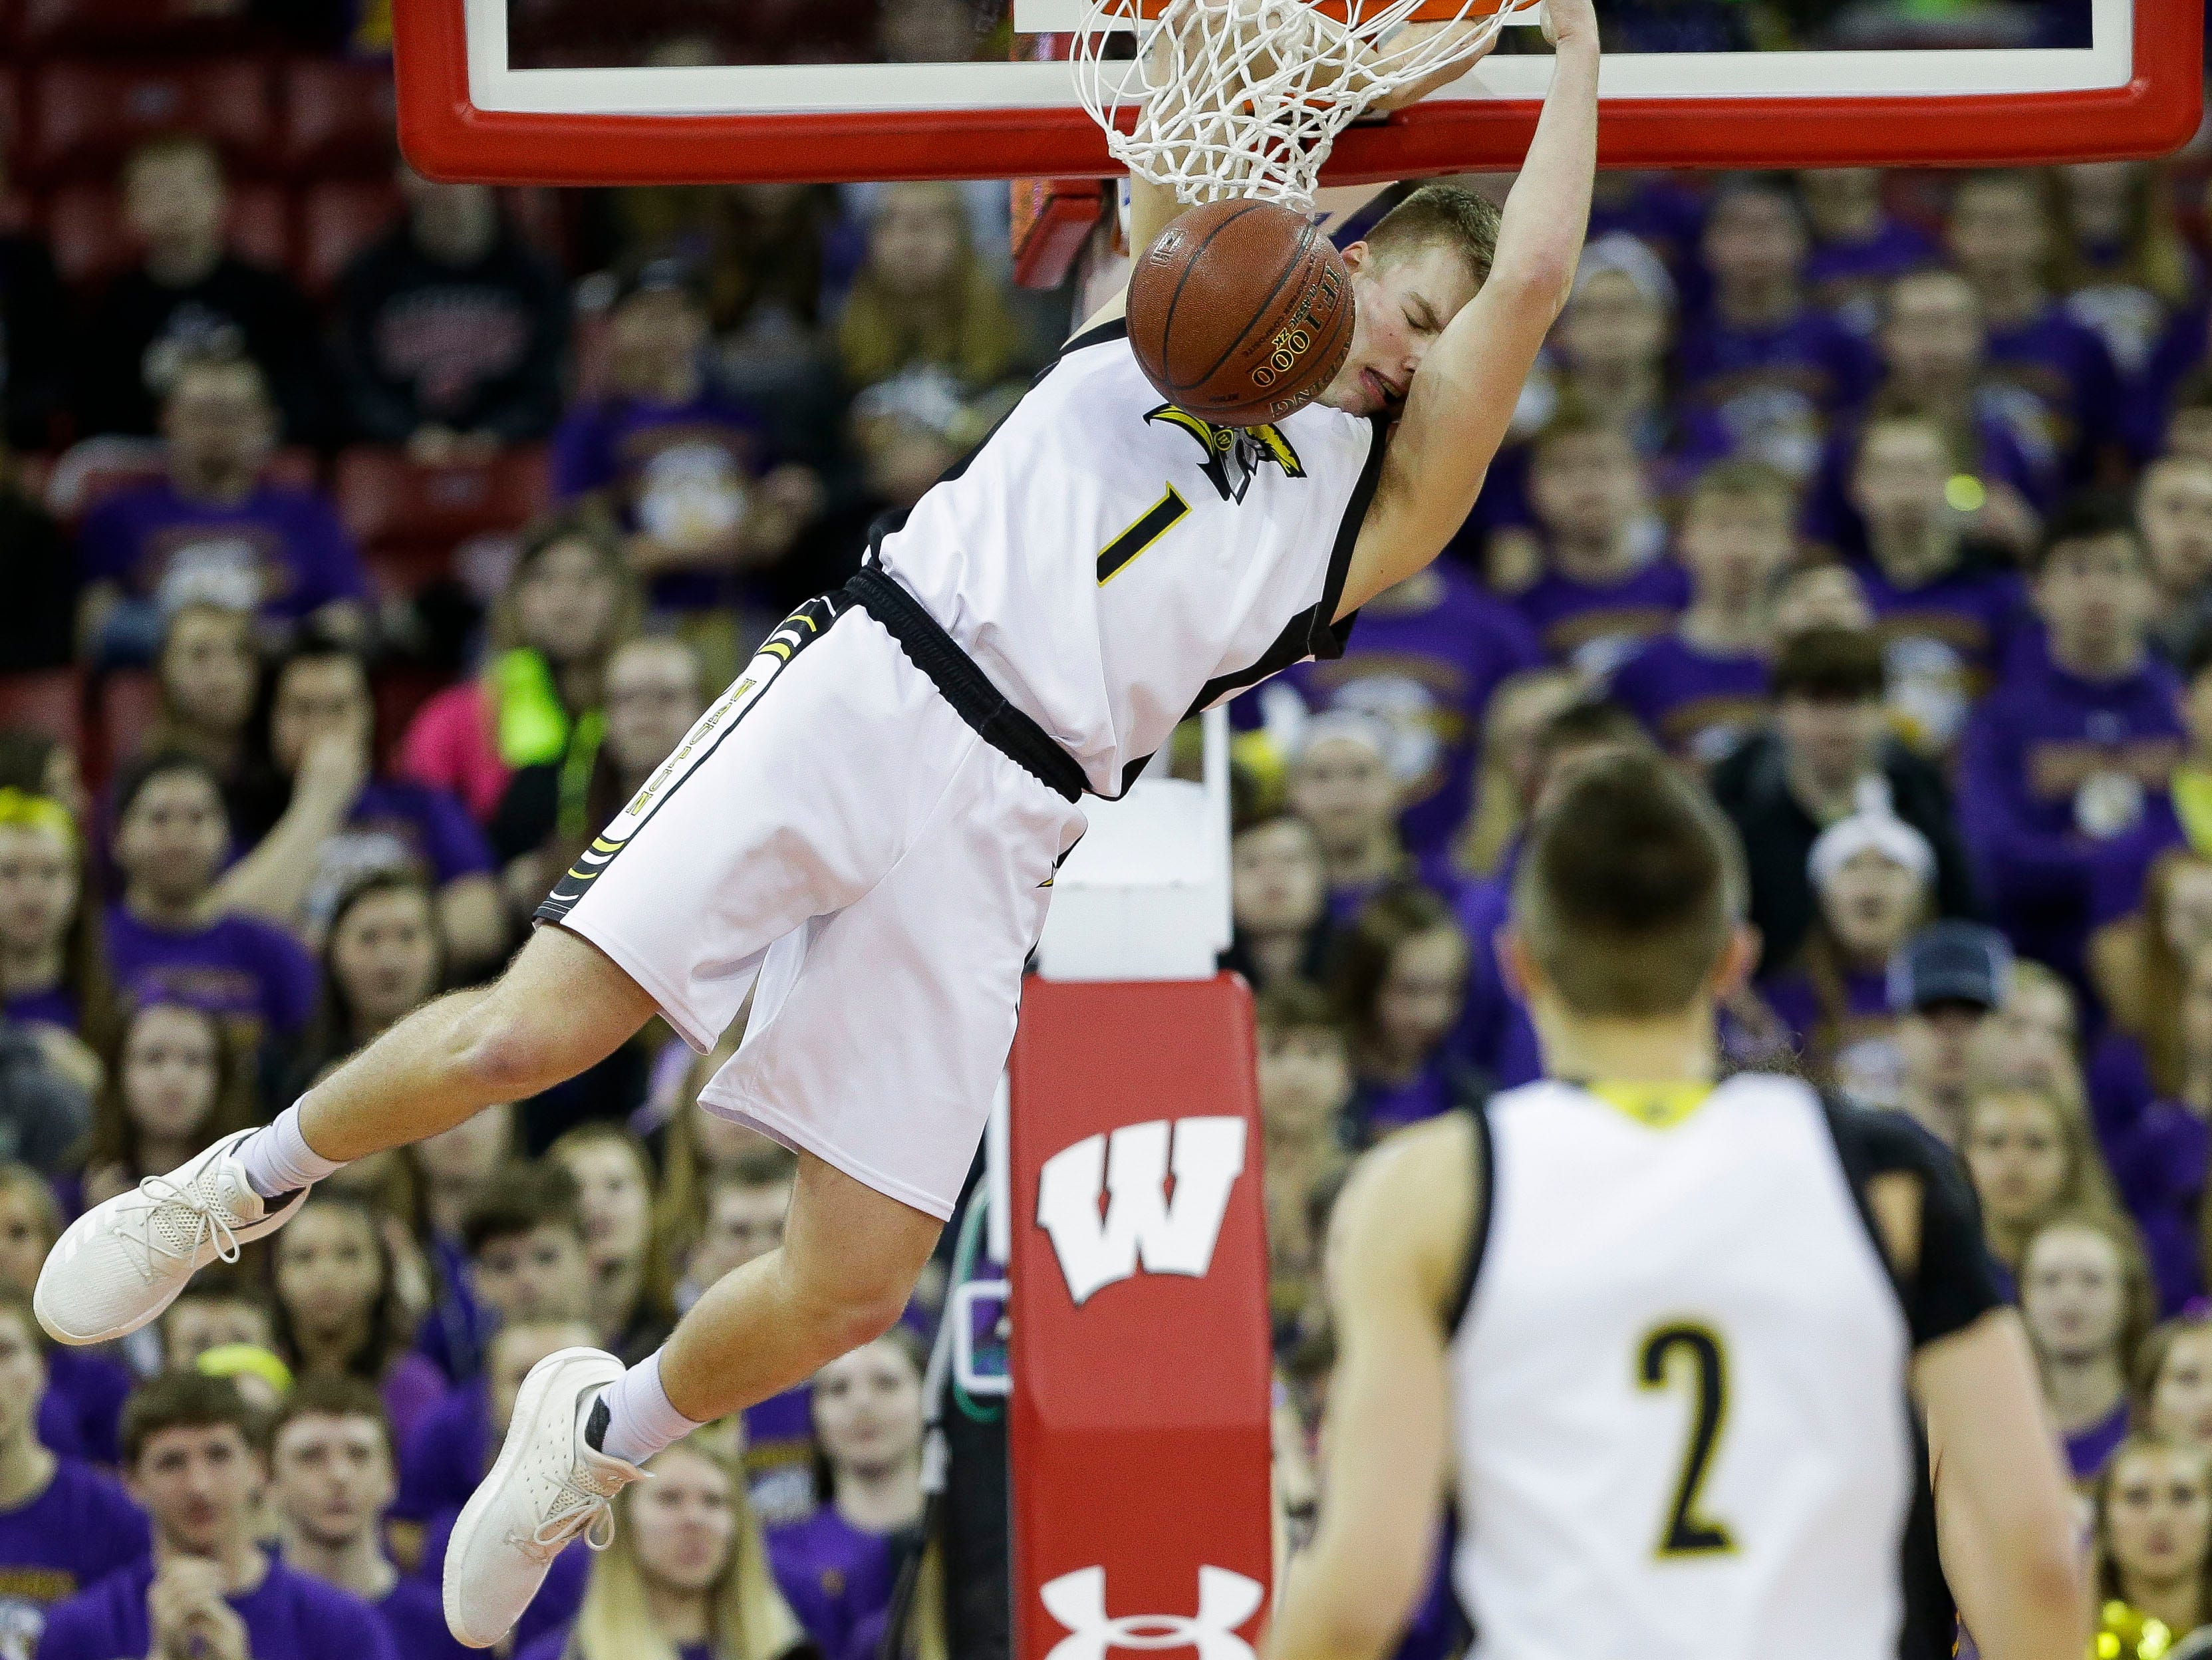 Waupun High School's Marcus Domask (1) dunks the ball against Denmark High School in a Division 3 boys basketball state semifinal on Thursday, March 14, 2019, at the Kohl Center in Madison, Wis.